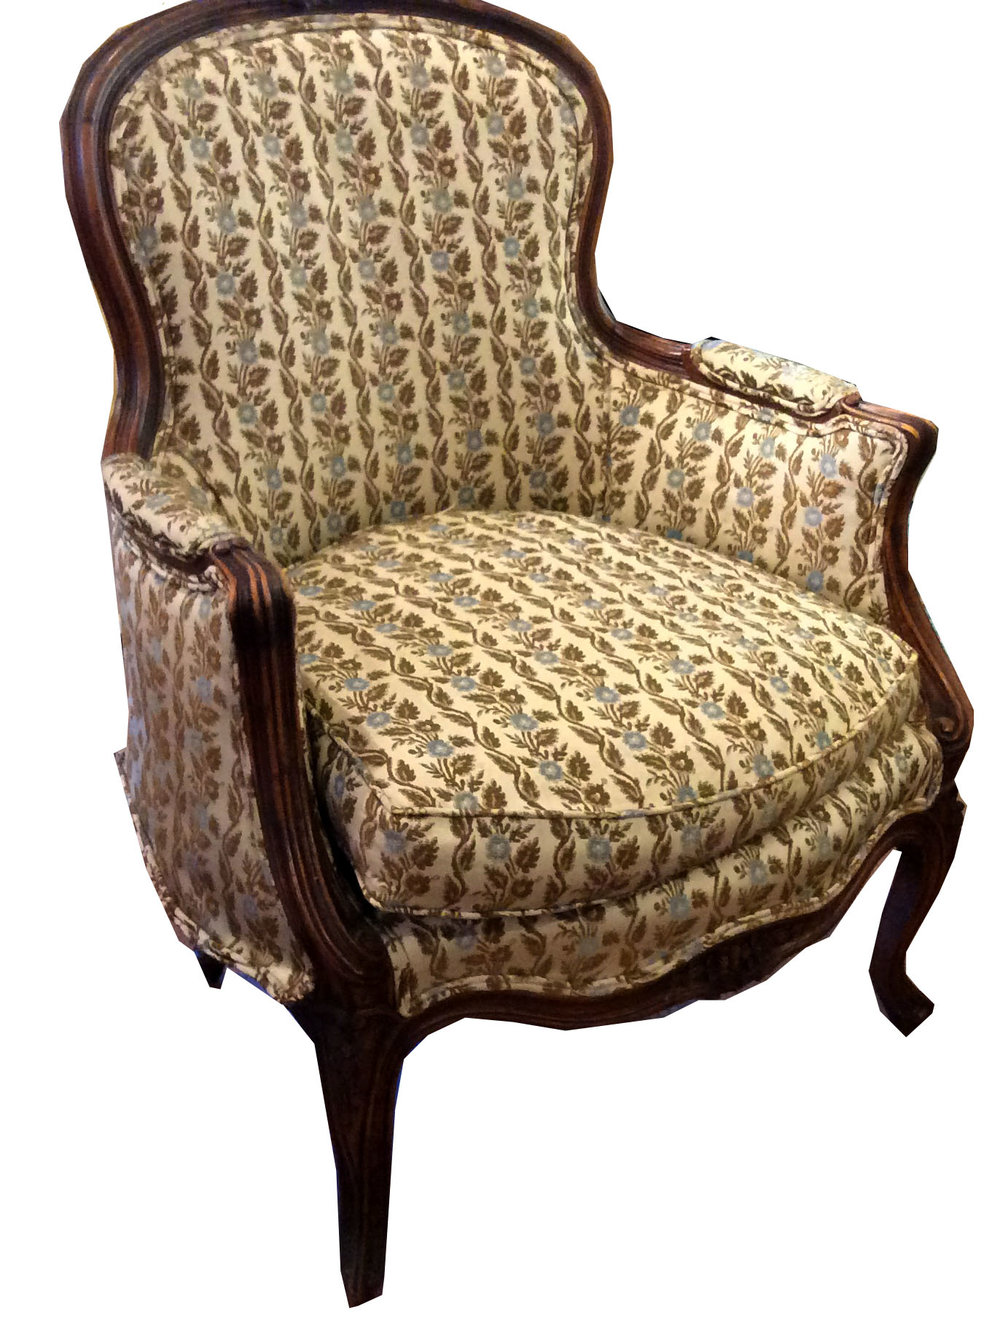 38 BEFORE Round back wooden chair on white.jpg